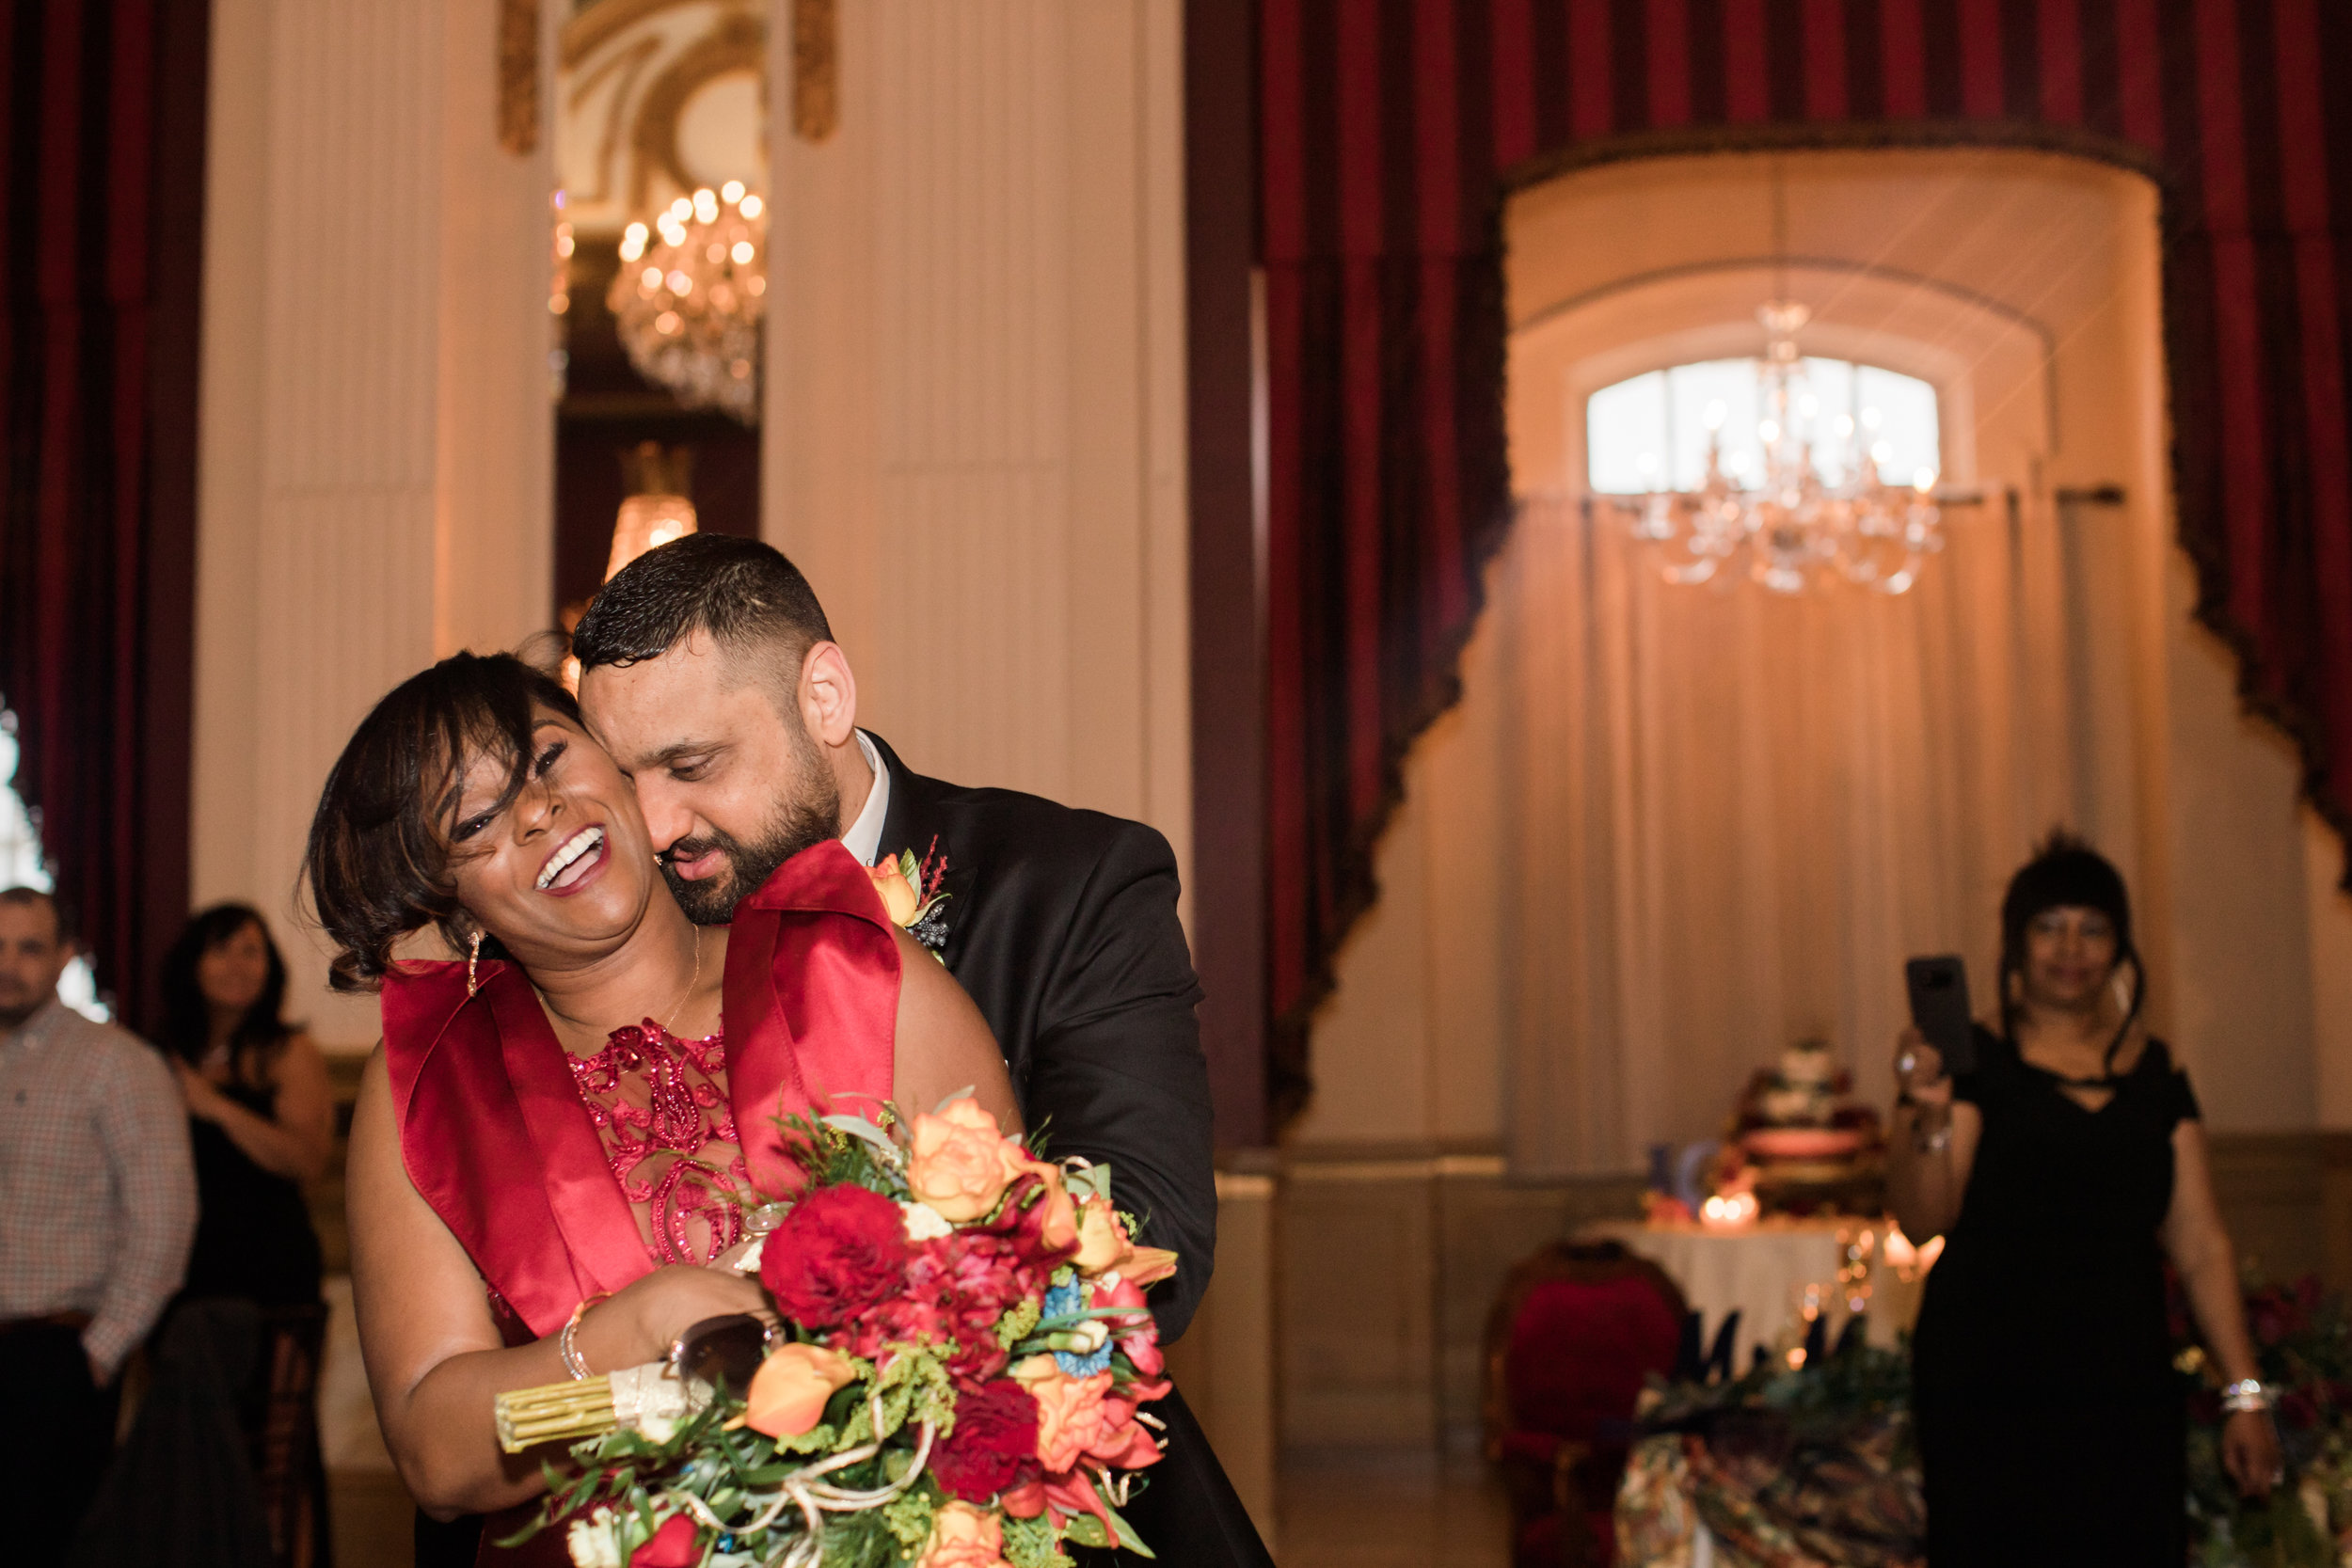 Multicultural wedding at The Belvedere in Baltimore Maryland Black Bride Indian wedding Megapixels Media Photography (63 of 90).jpg